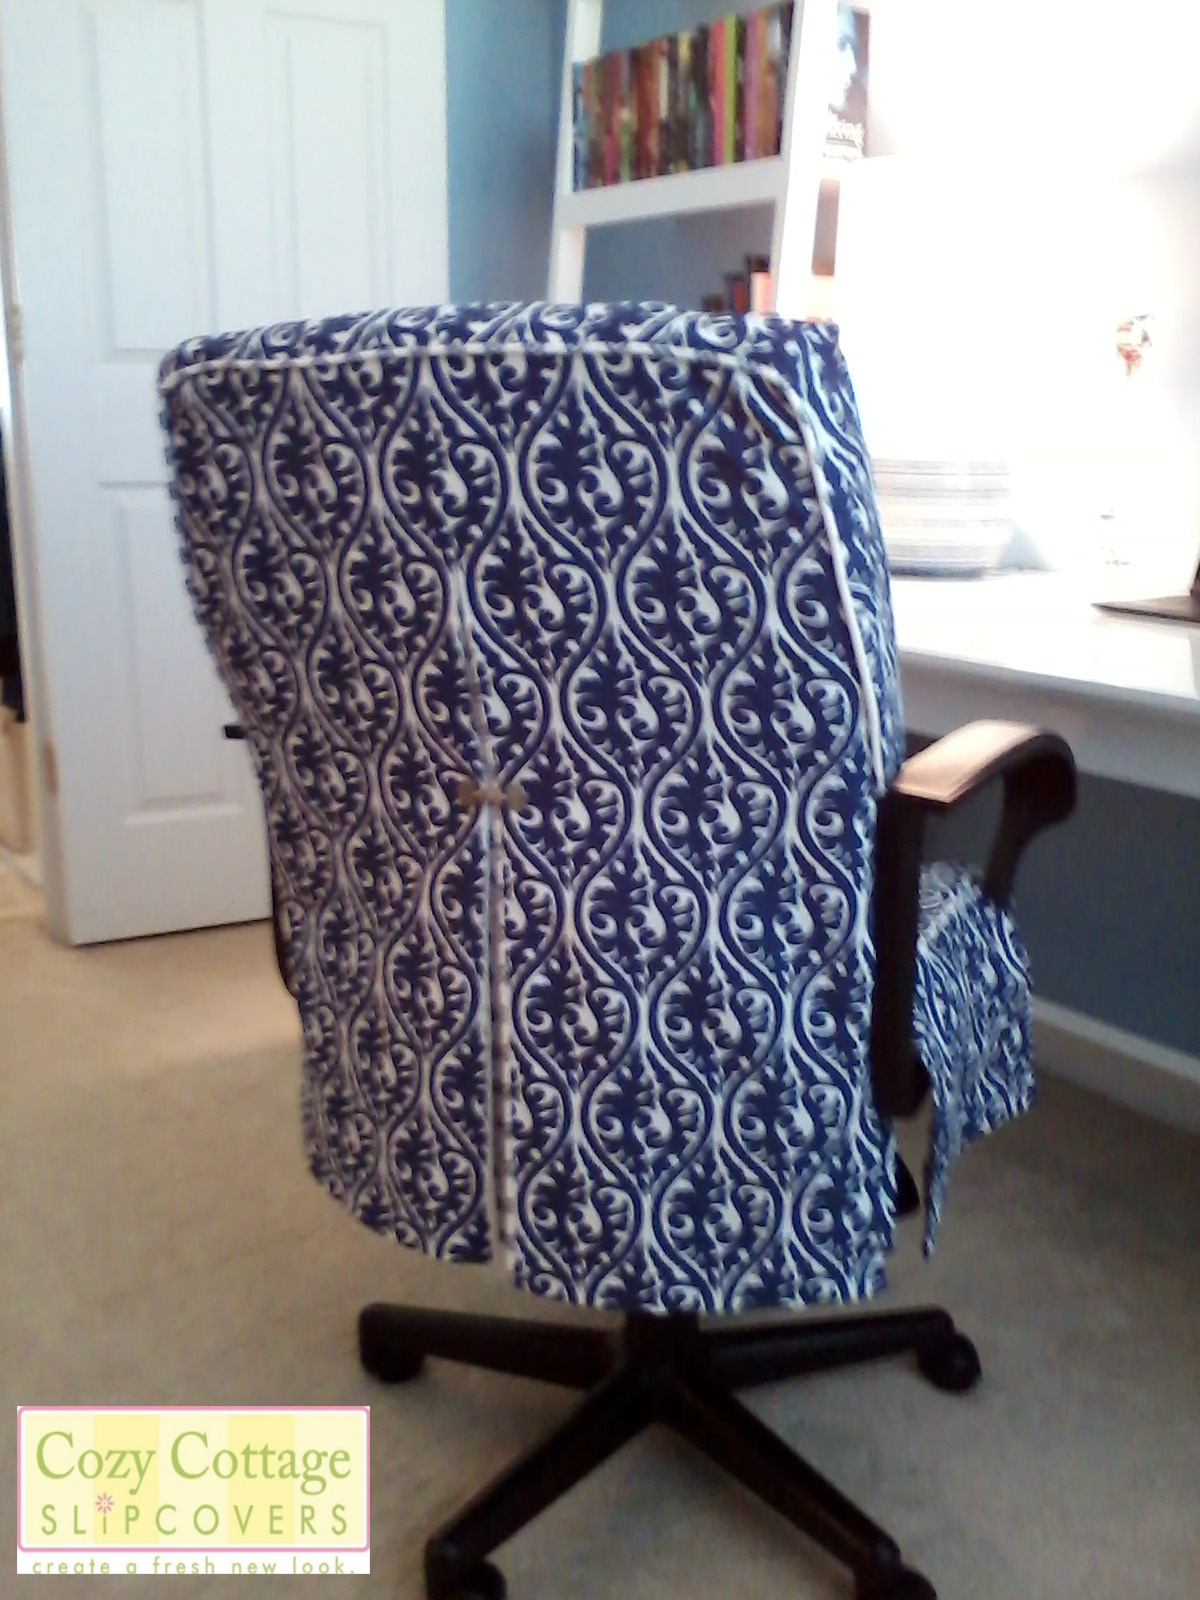 Office chair slipcovers - I Had A Lot Of Fun Working With These Beautiful Fabrics Below Are Pictures My Customers Have Sent Me Showing How The Slipcovers Look In Their Office Space